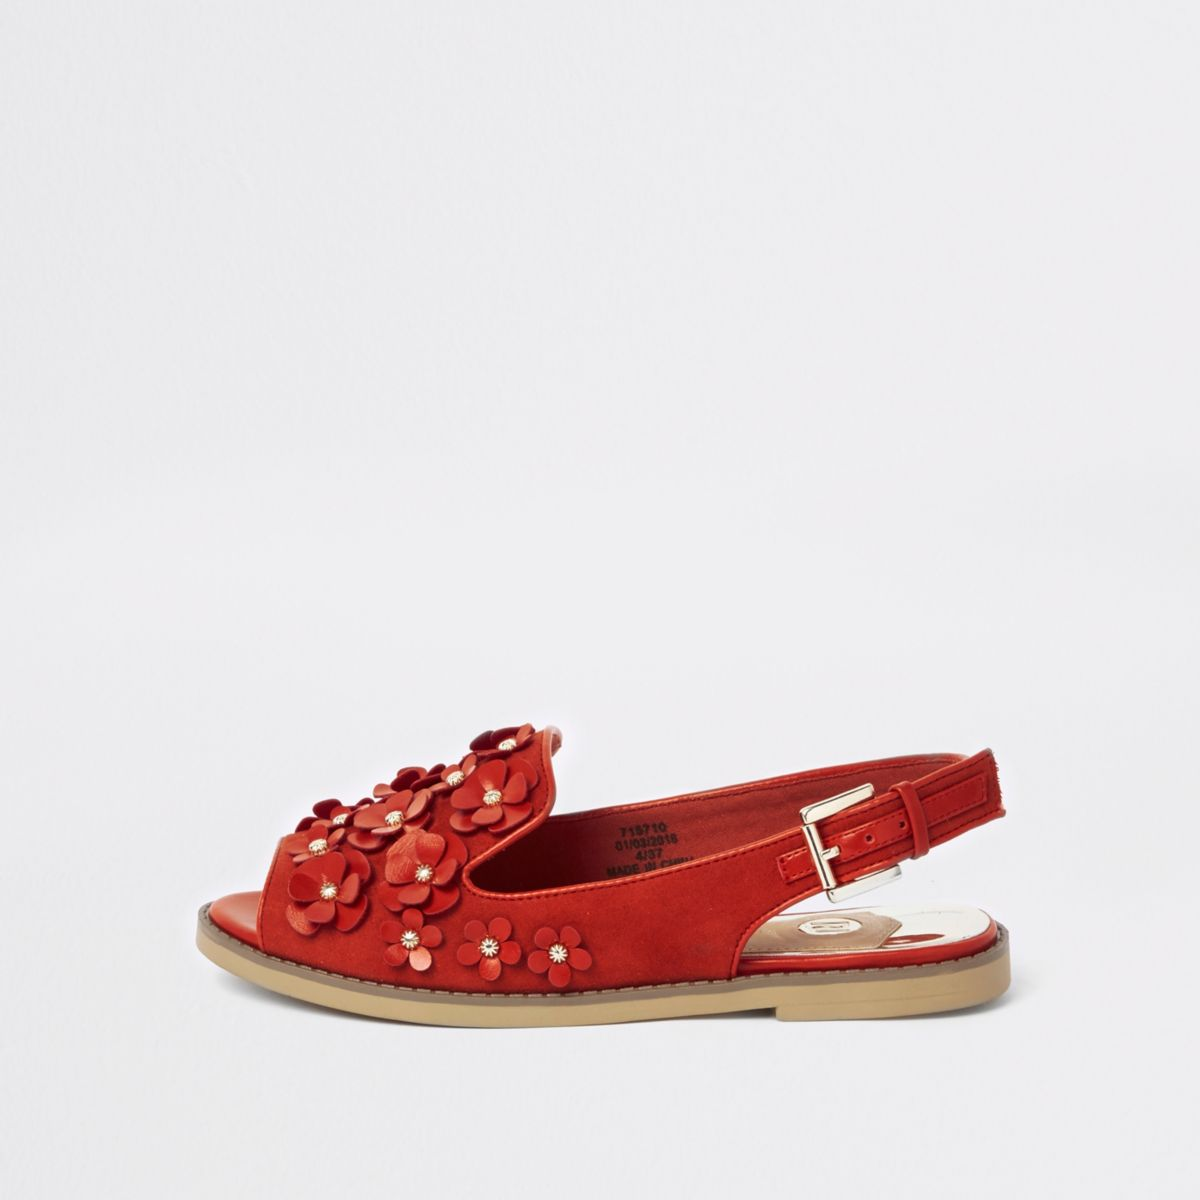 Red 3D flower slingback peep toe loafers